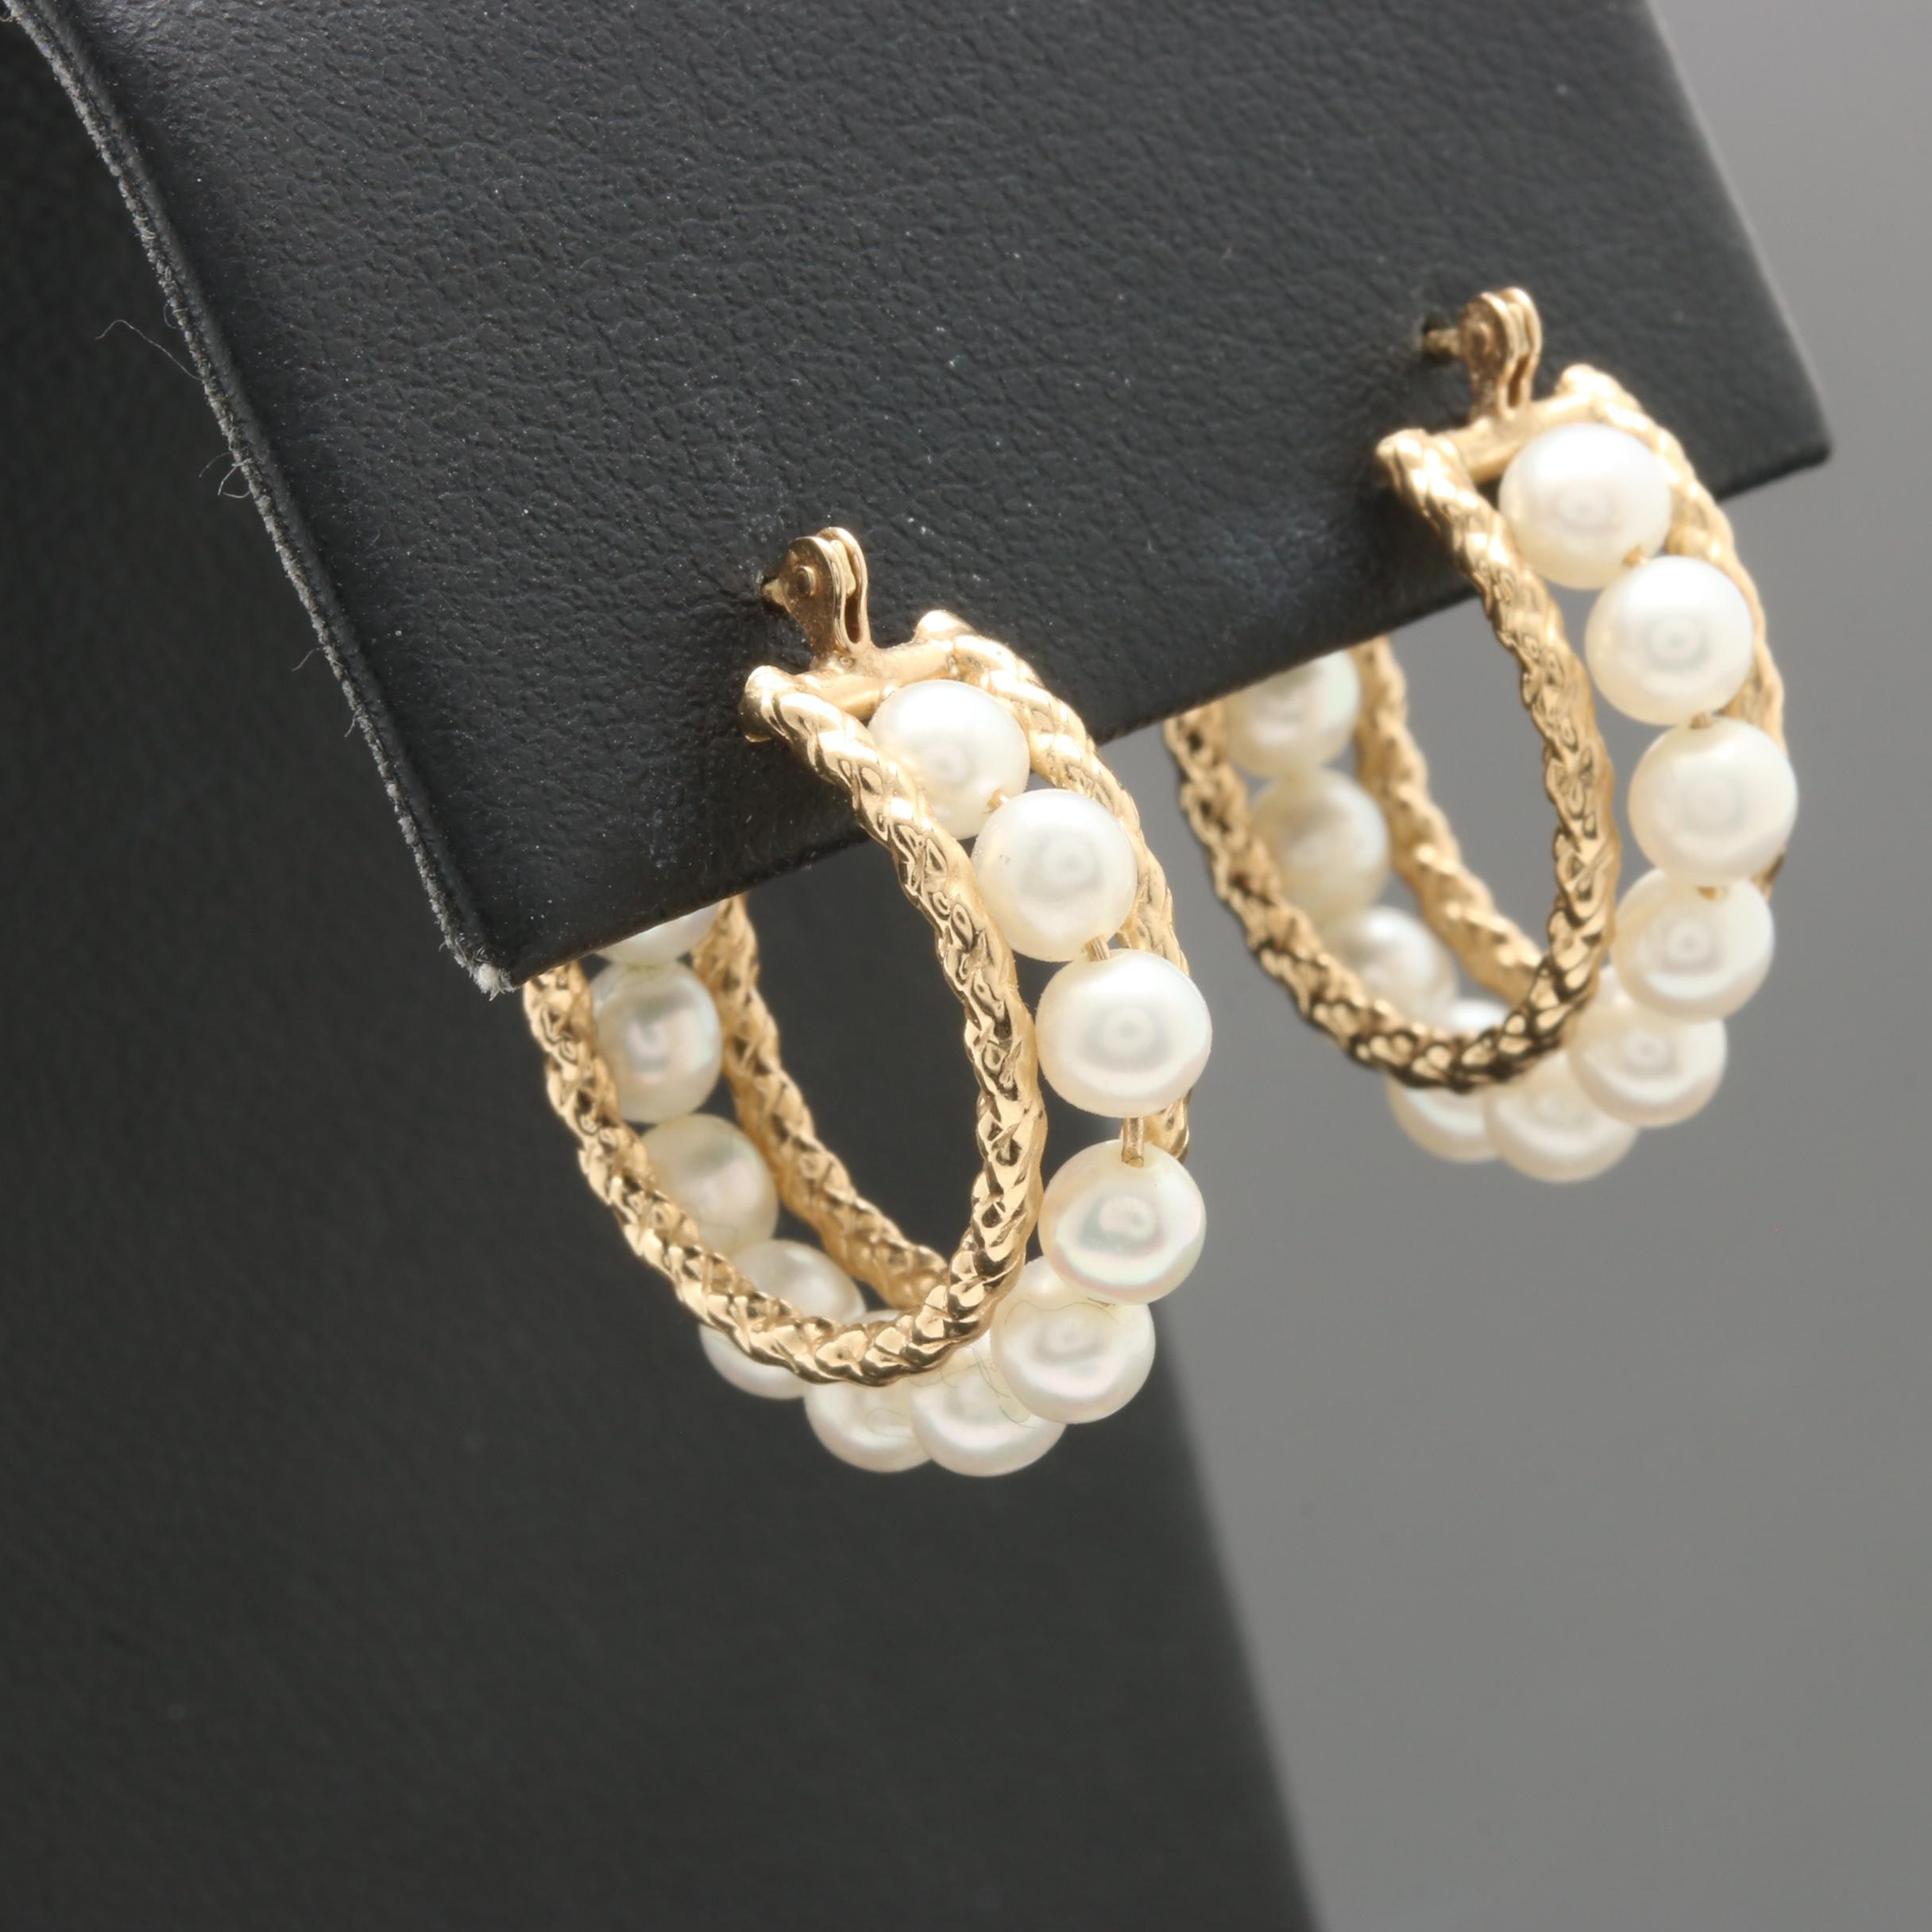 10K Yellow Gold Cultured Pearl Hoop Earrings